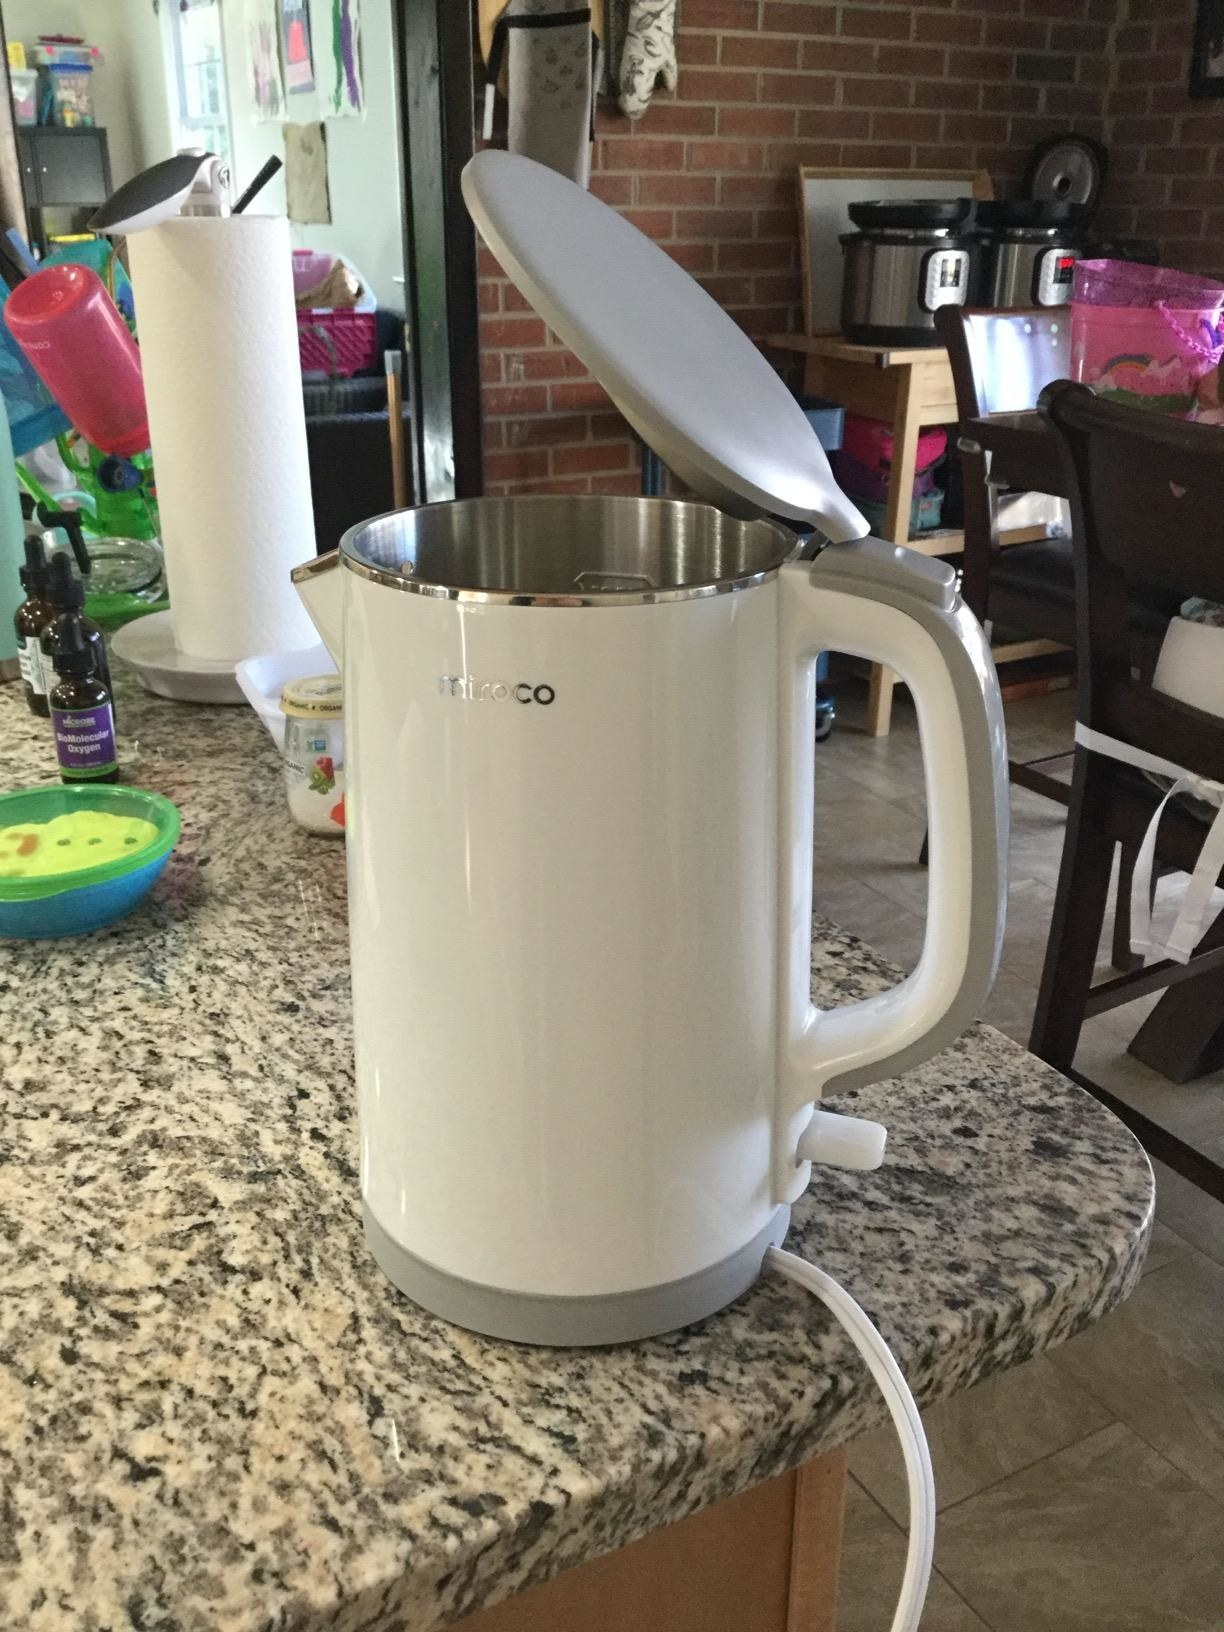 A white electric tea kettle with a gray top and grat accents at the base and handle